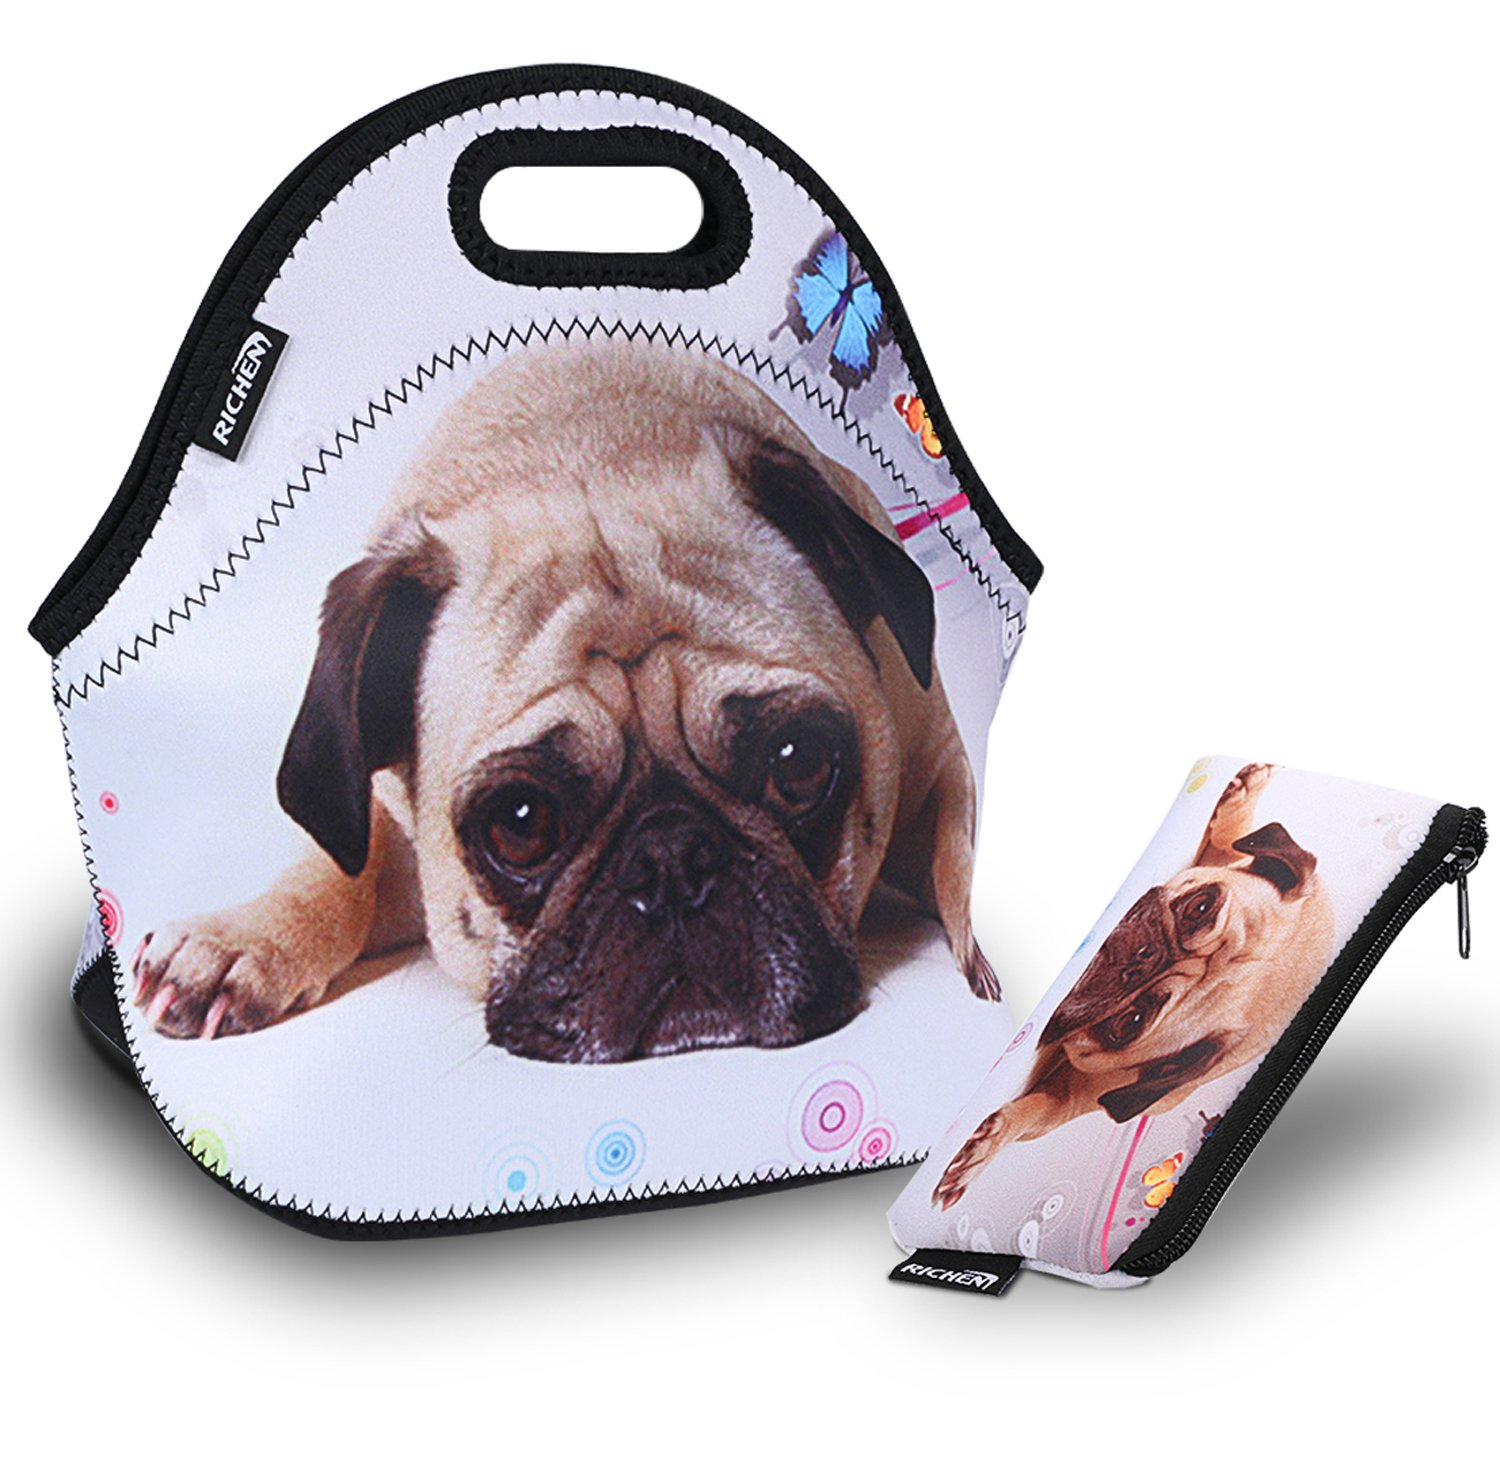 RICHEN Neoprene Lunch Bag with Cutlery Kit Neoprene Case for Knife,Fork,Spoon,Thermal Thick Lunch Tote Bag,Reusable Bags for Adults and Kids,Pug Dog Design (RLB-08)